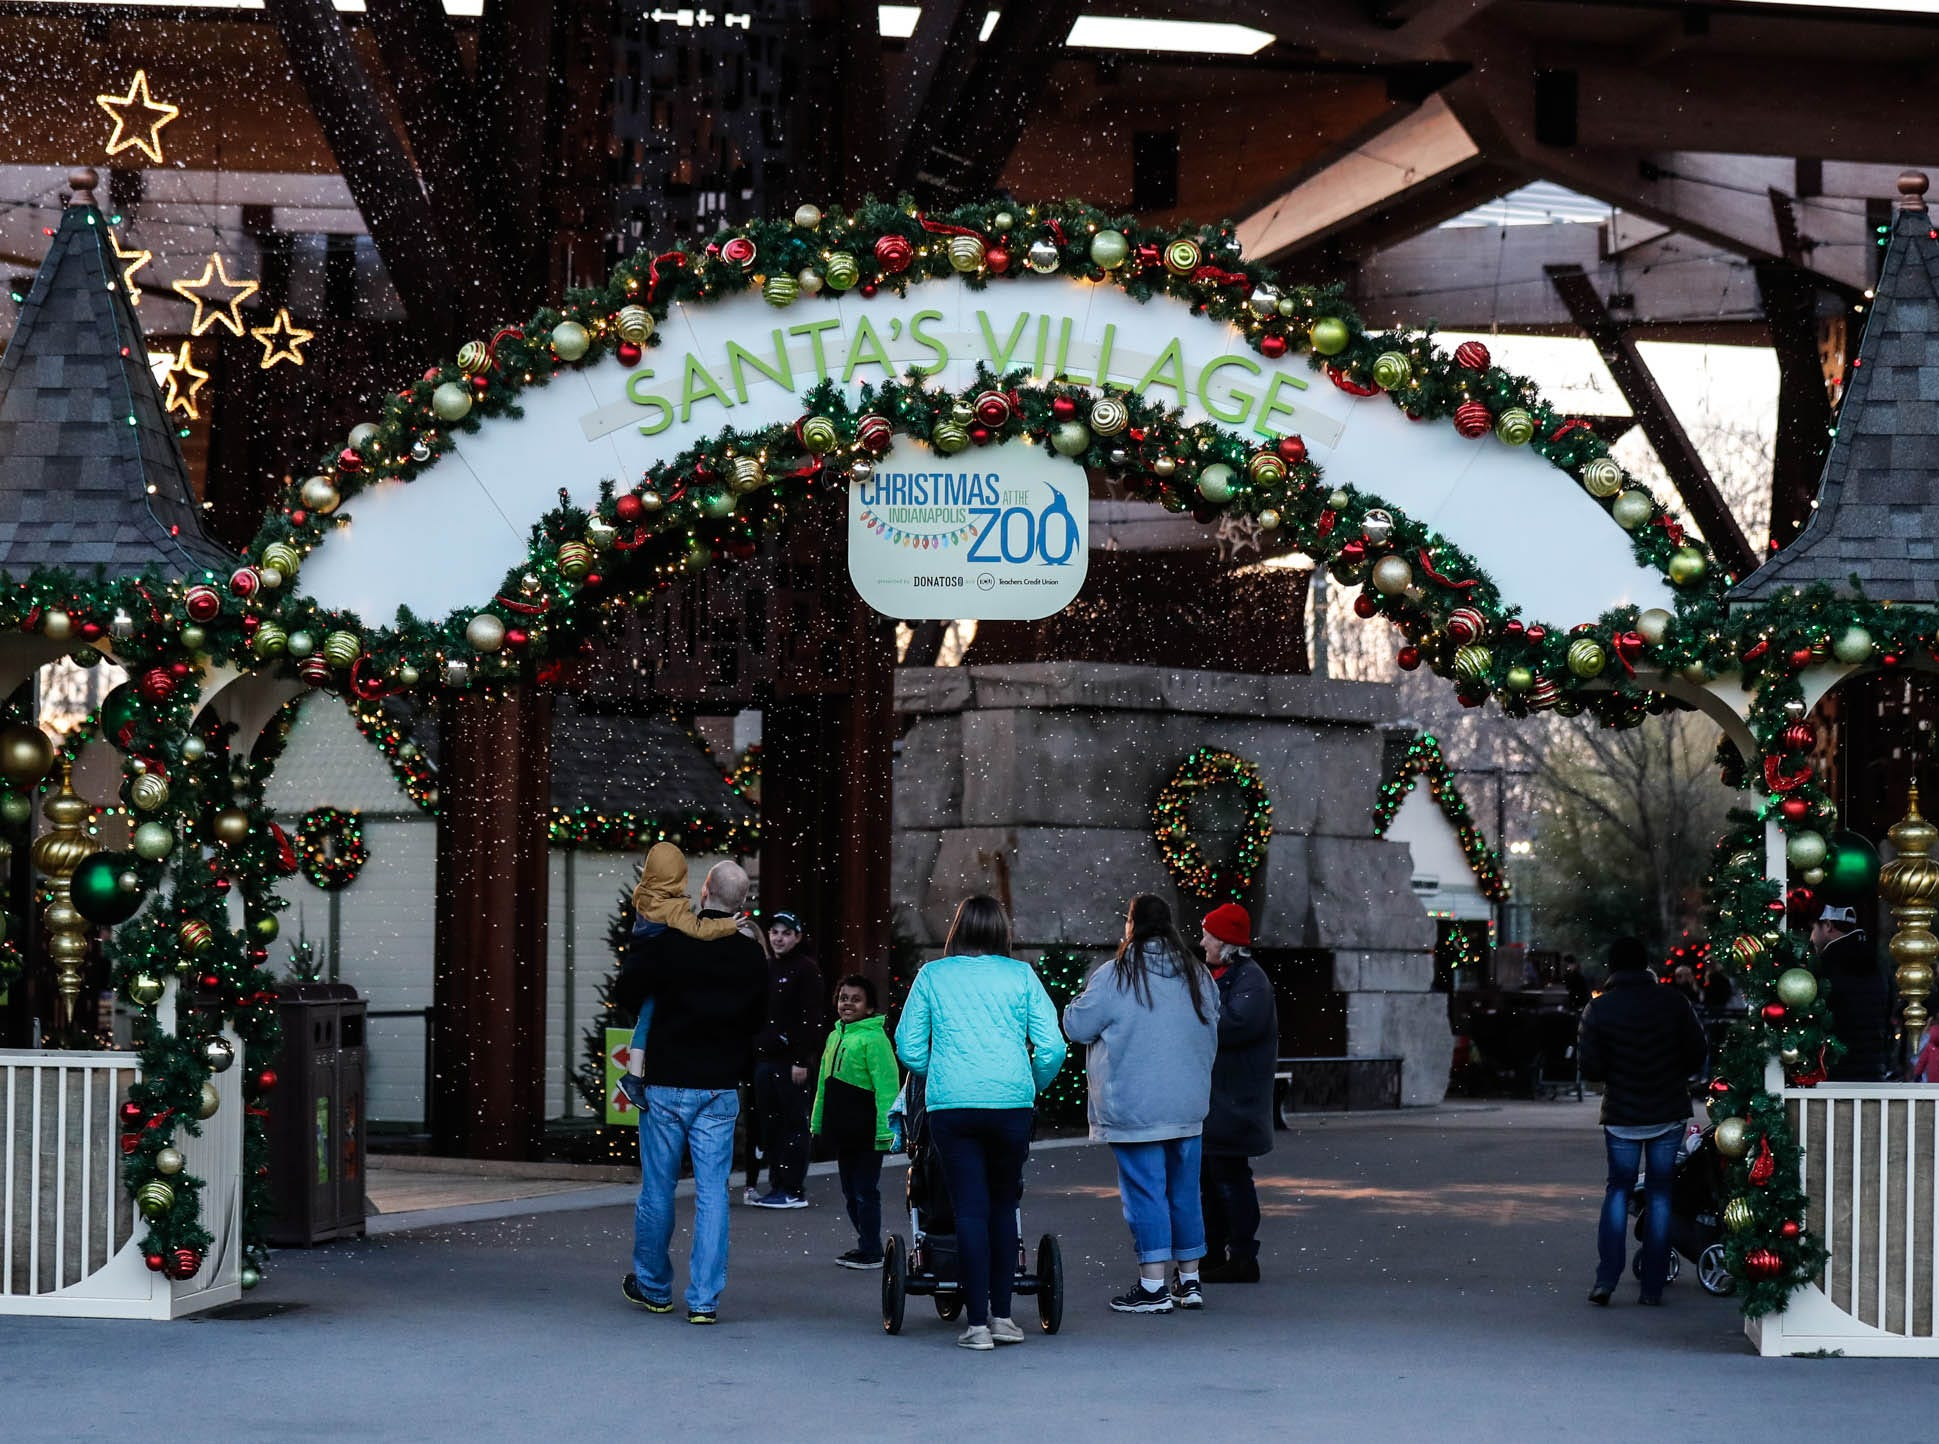 Guests enter Santa's Village during Christmas at the Indianapolis Zoo on Wednesday, Dec. 19, 2018.